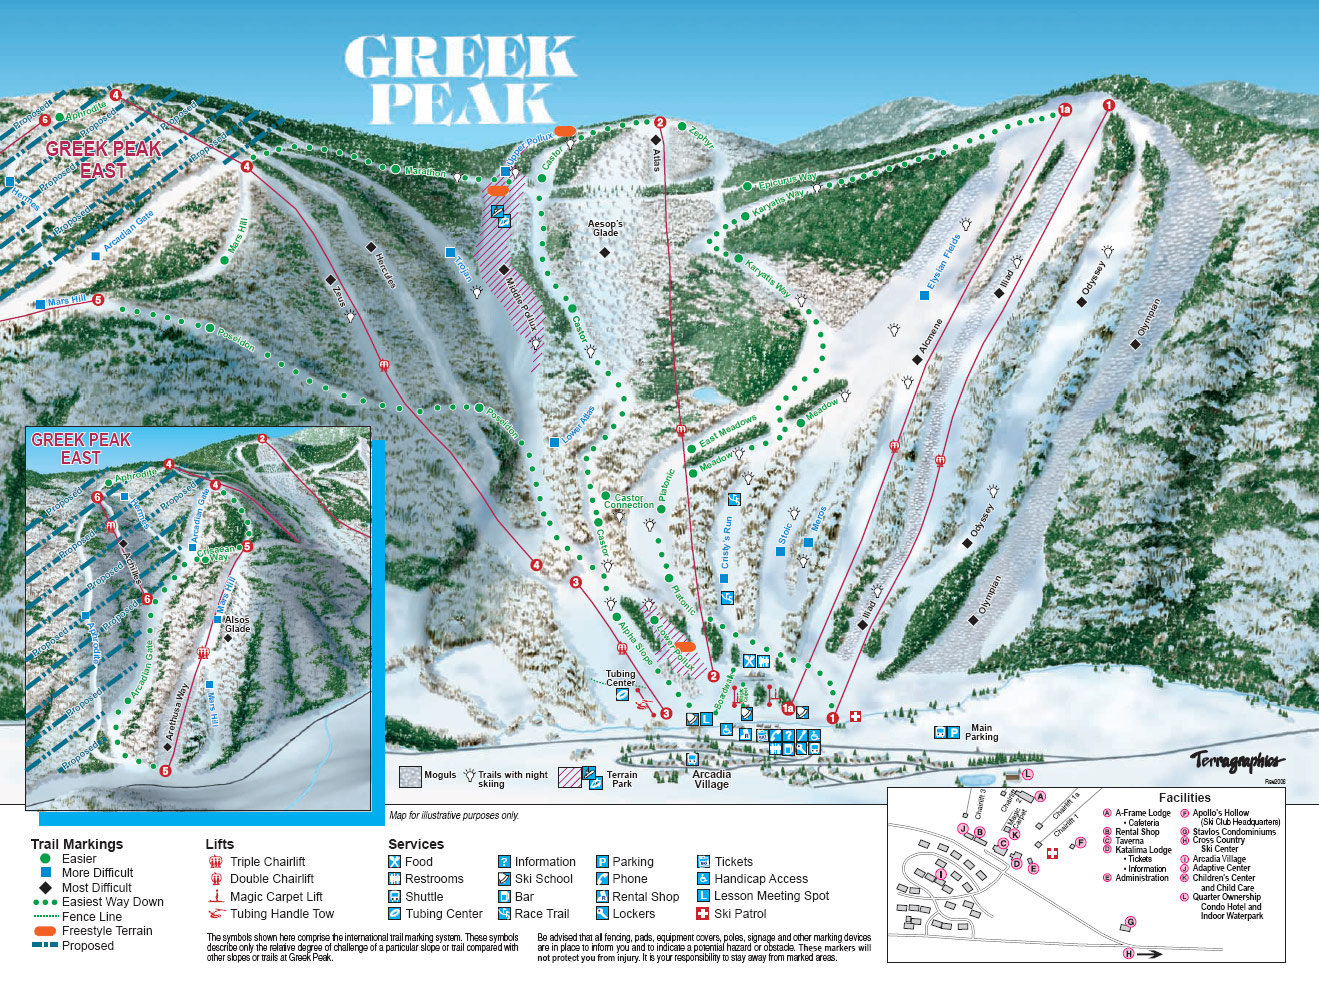 greek peak trail map with Greek Peak Ski Trail Map on Climbing Mt Olympus together with 50 Beautiful Mountain Pictures And Wallpapers together with Happy Birthday Shawntae Harris Da Brat in addition Plik white Tailed deer furthermore .